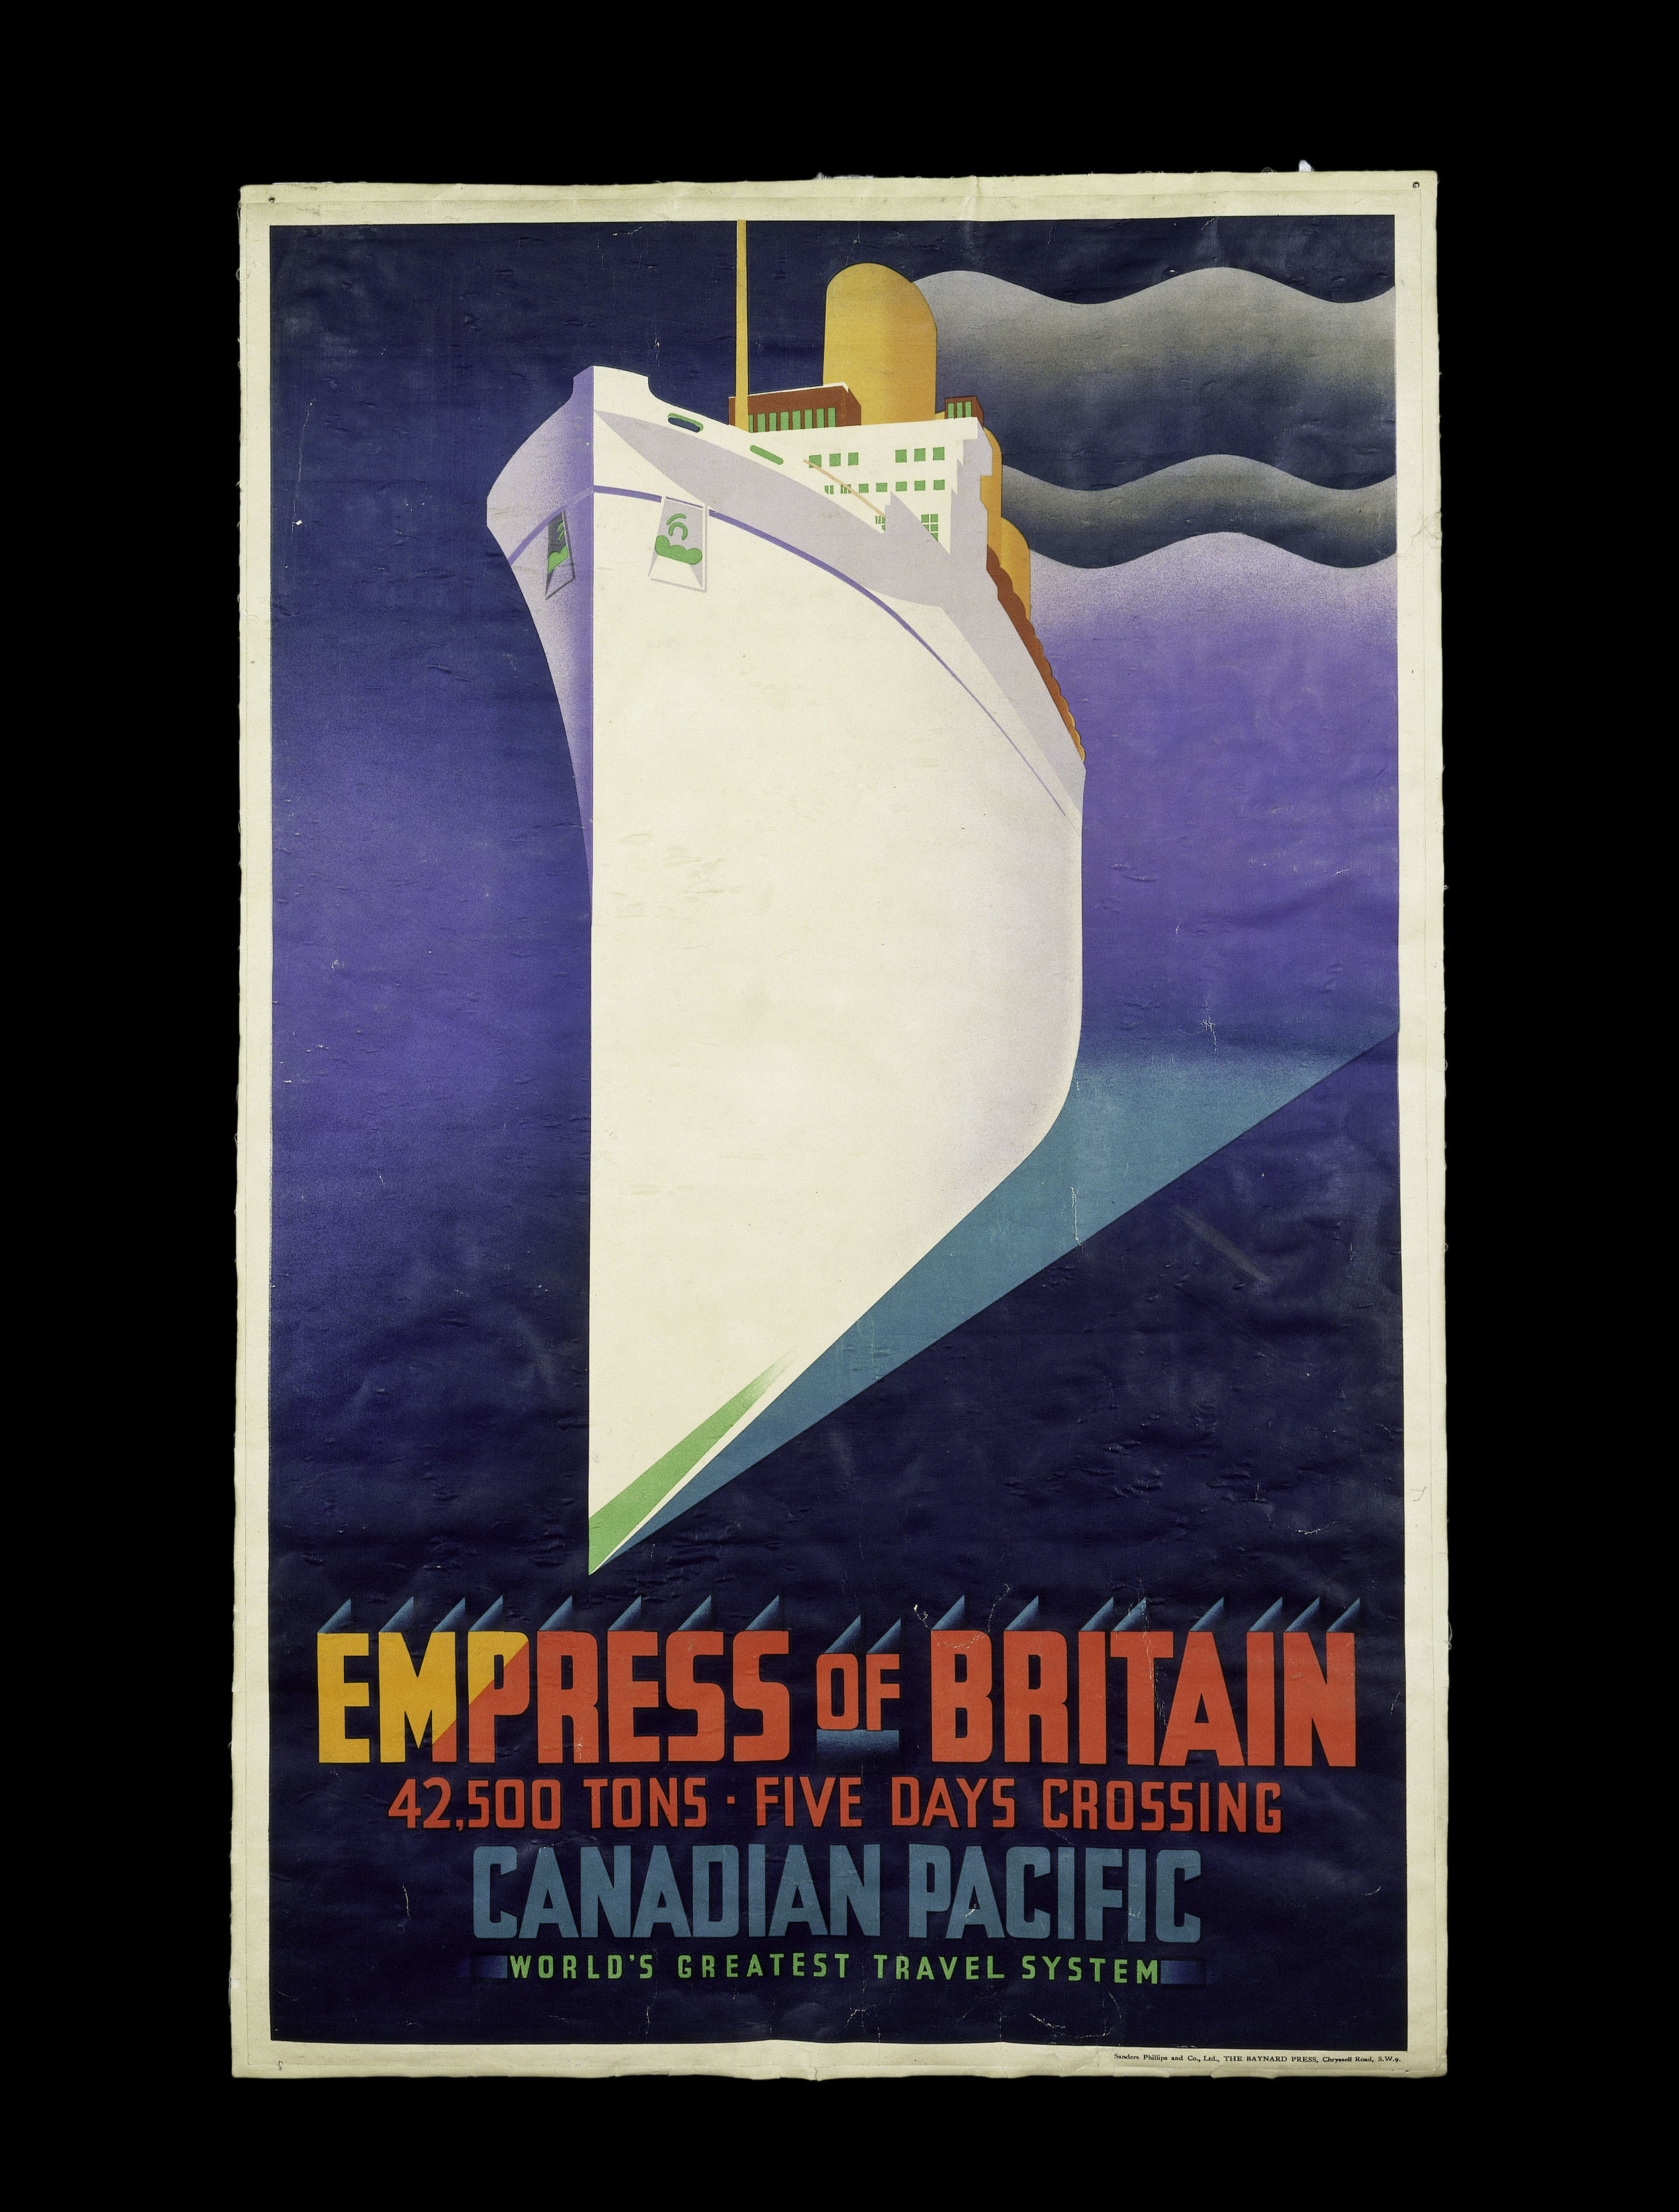 Empress of Britain colour lithograph poster for Canadian Pacific Railways, J.R. Tooby, London, 1920 – 31 © Victoria and Albert Museum, London